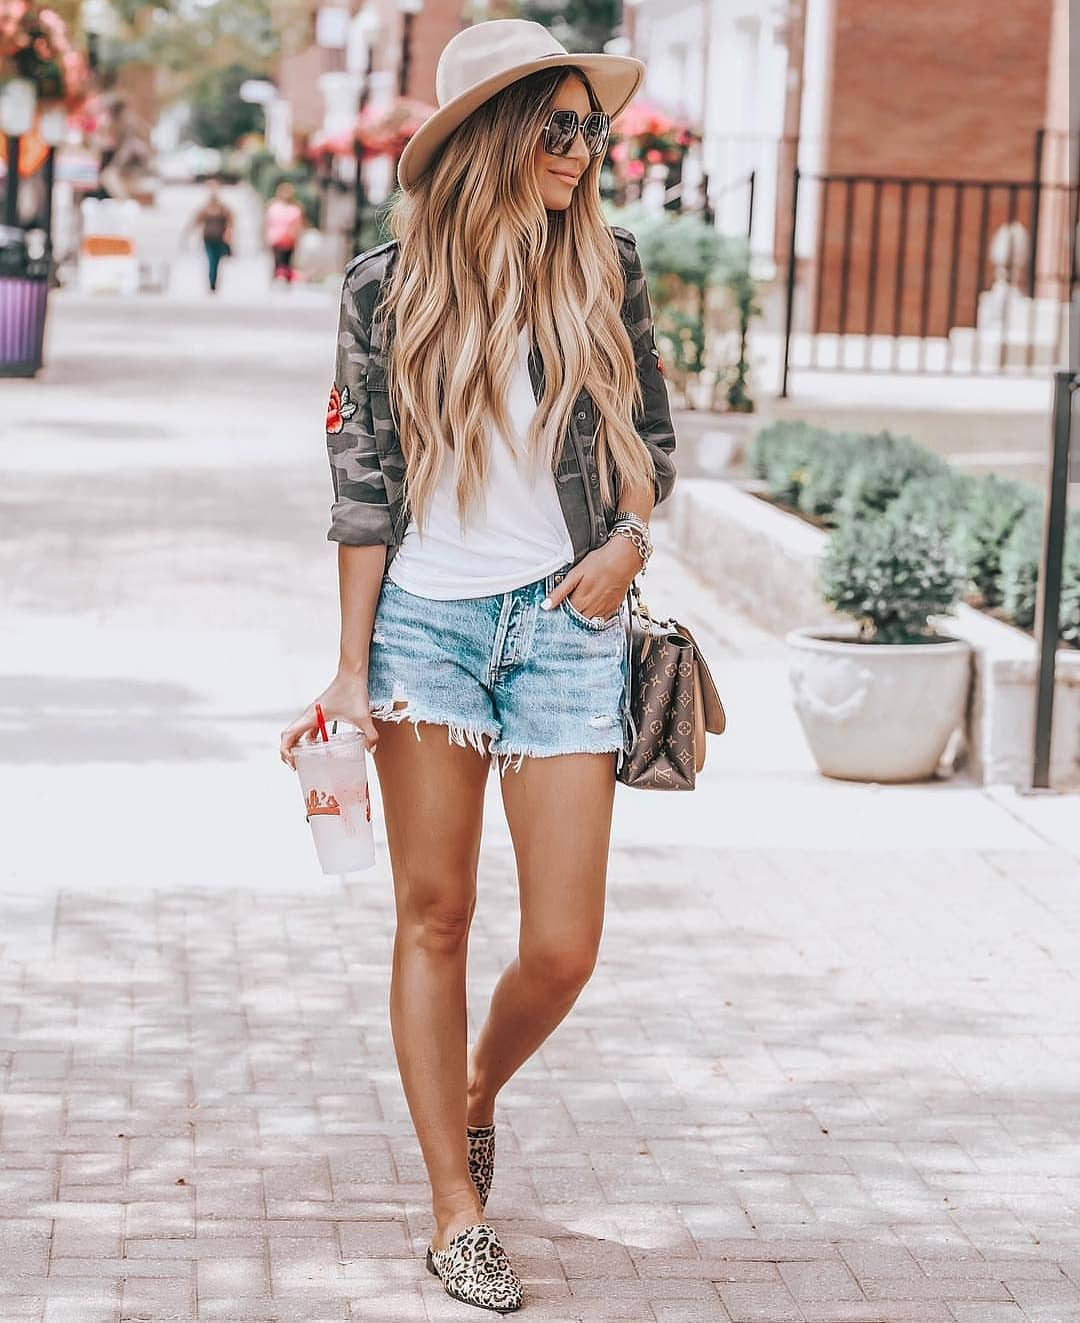 Camouflage Print Jacket With Wash Denim Shorts And Leopard Mules For Summer 2019